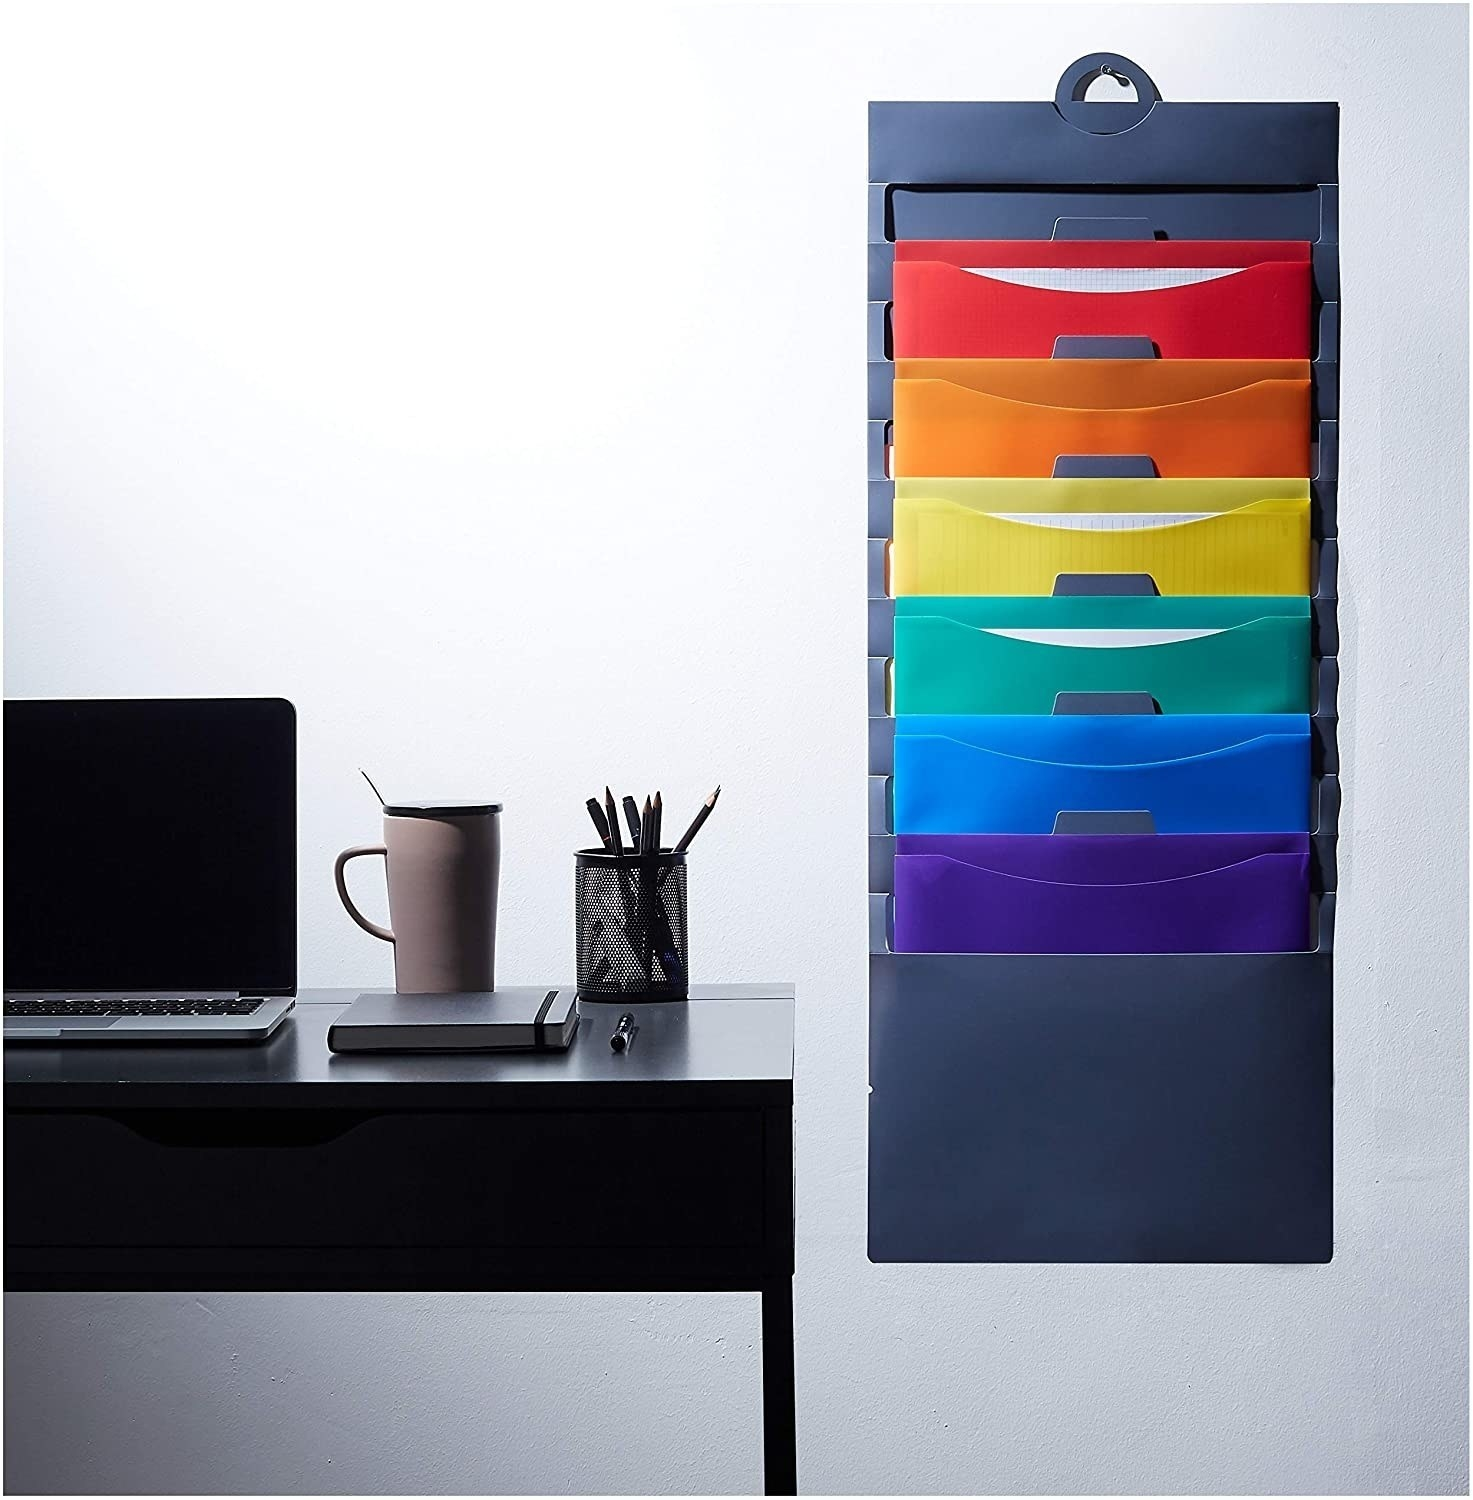 the wall hanger showing the folders in colors red, orange, yellow, green, blue, and purple